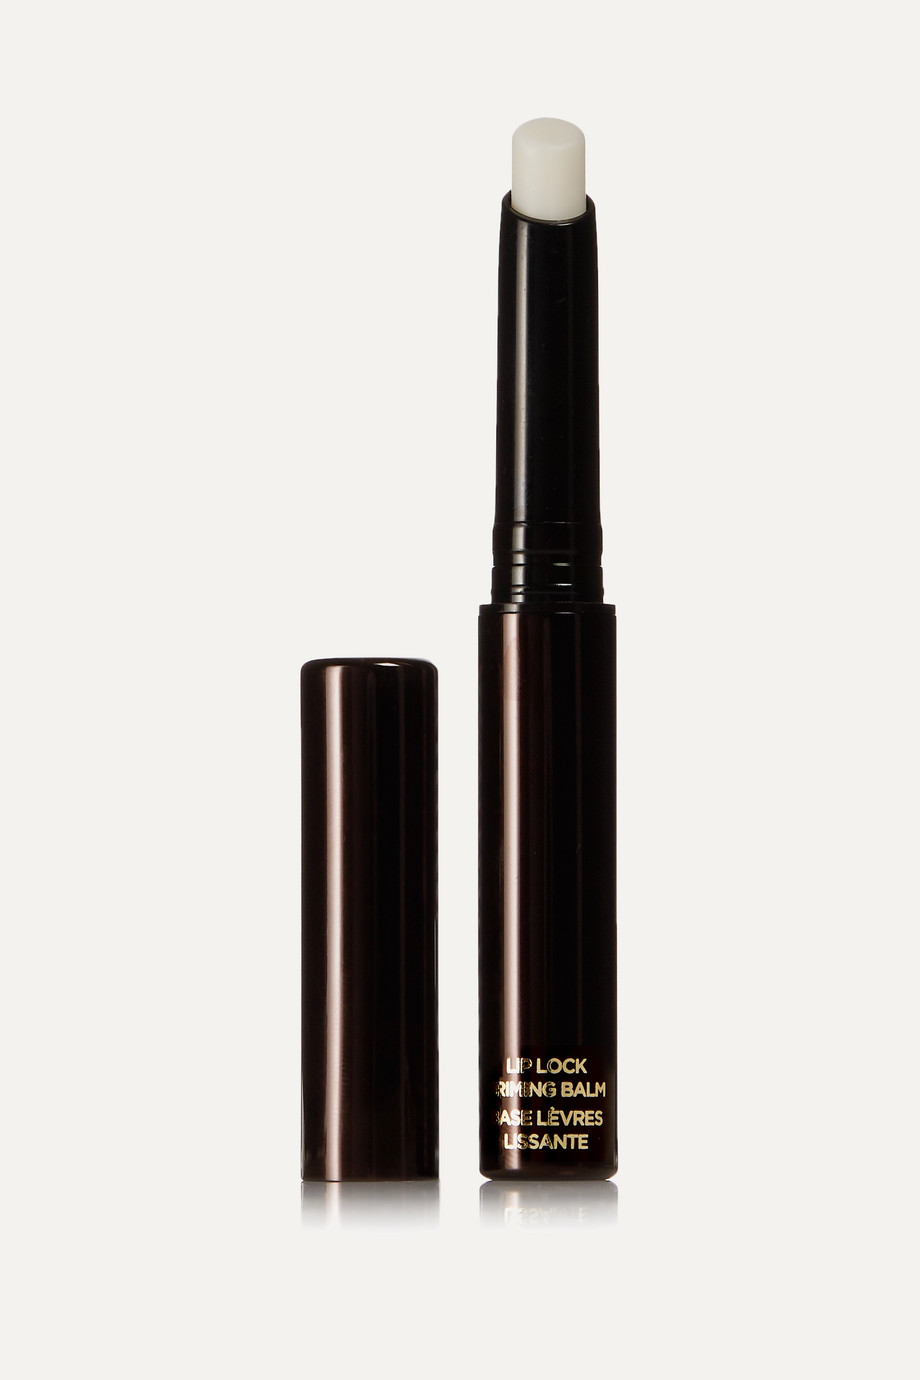 TOM FORD BEAUTY Lip Lock Priming Balm, 1.2g